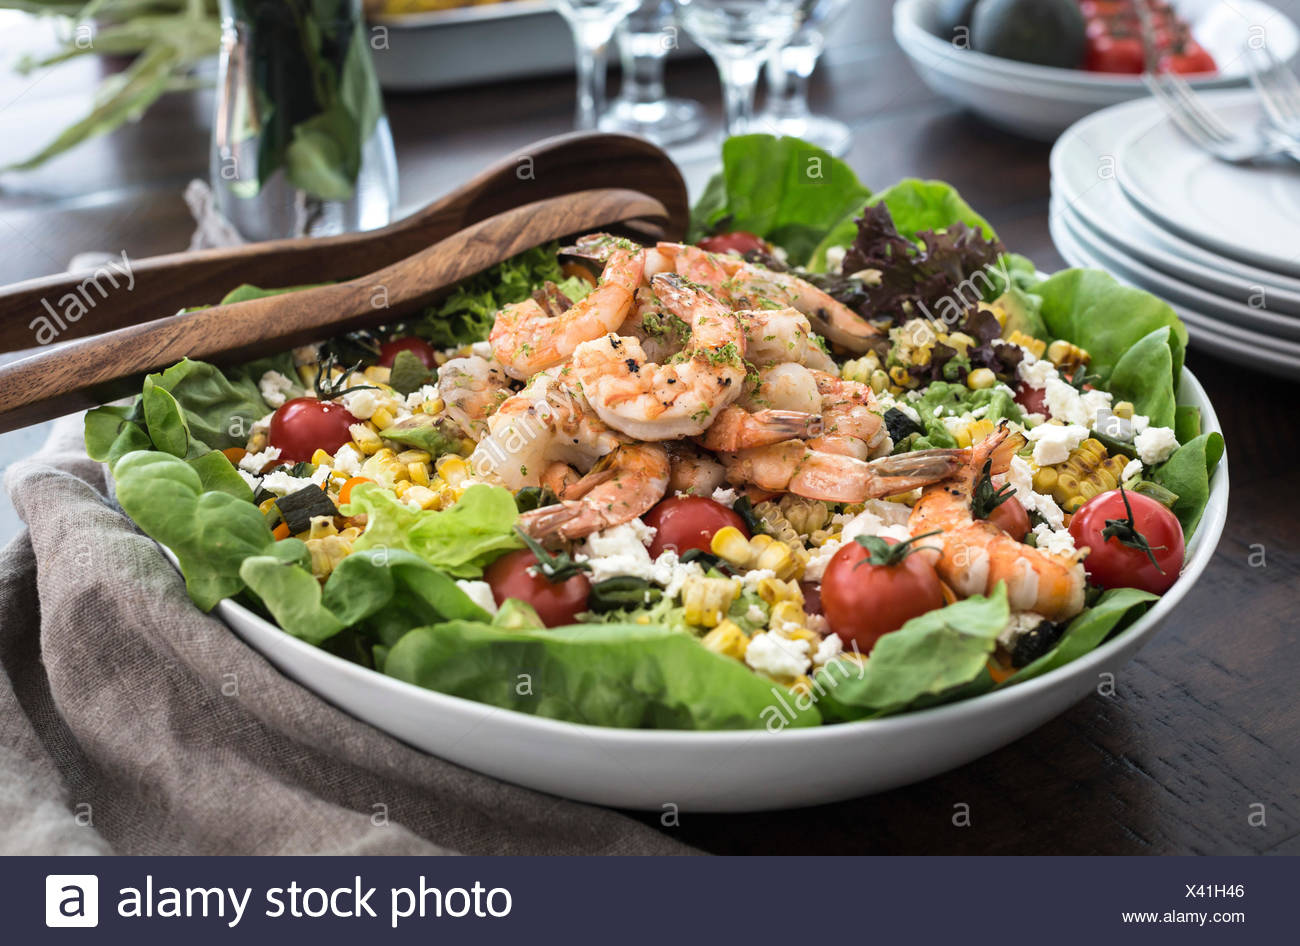 A large bowl of grilled shrimp and corn salad is photographed from the front view. - Stock Image